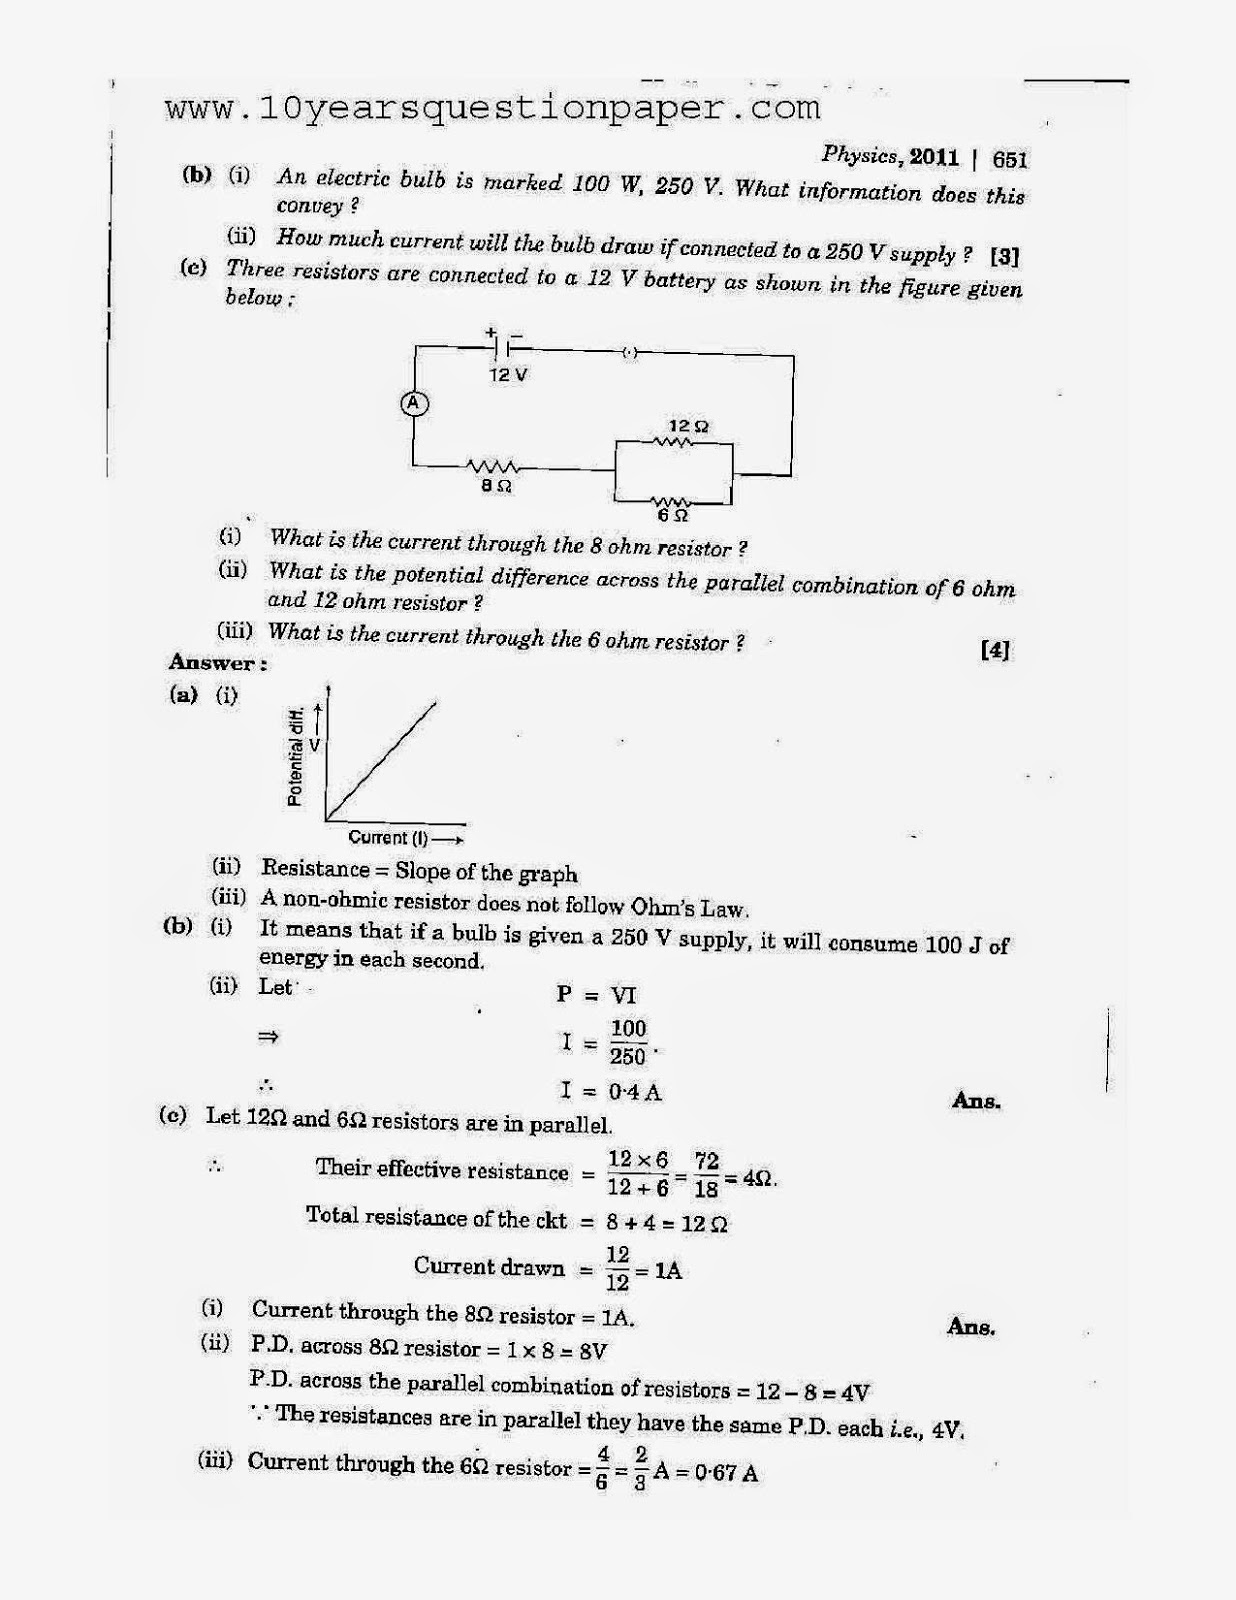 icse 2011 class 10th science physics paper 1 question paper